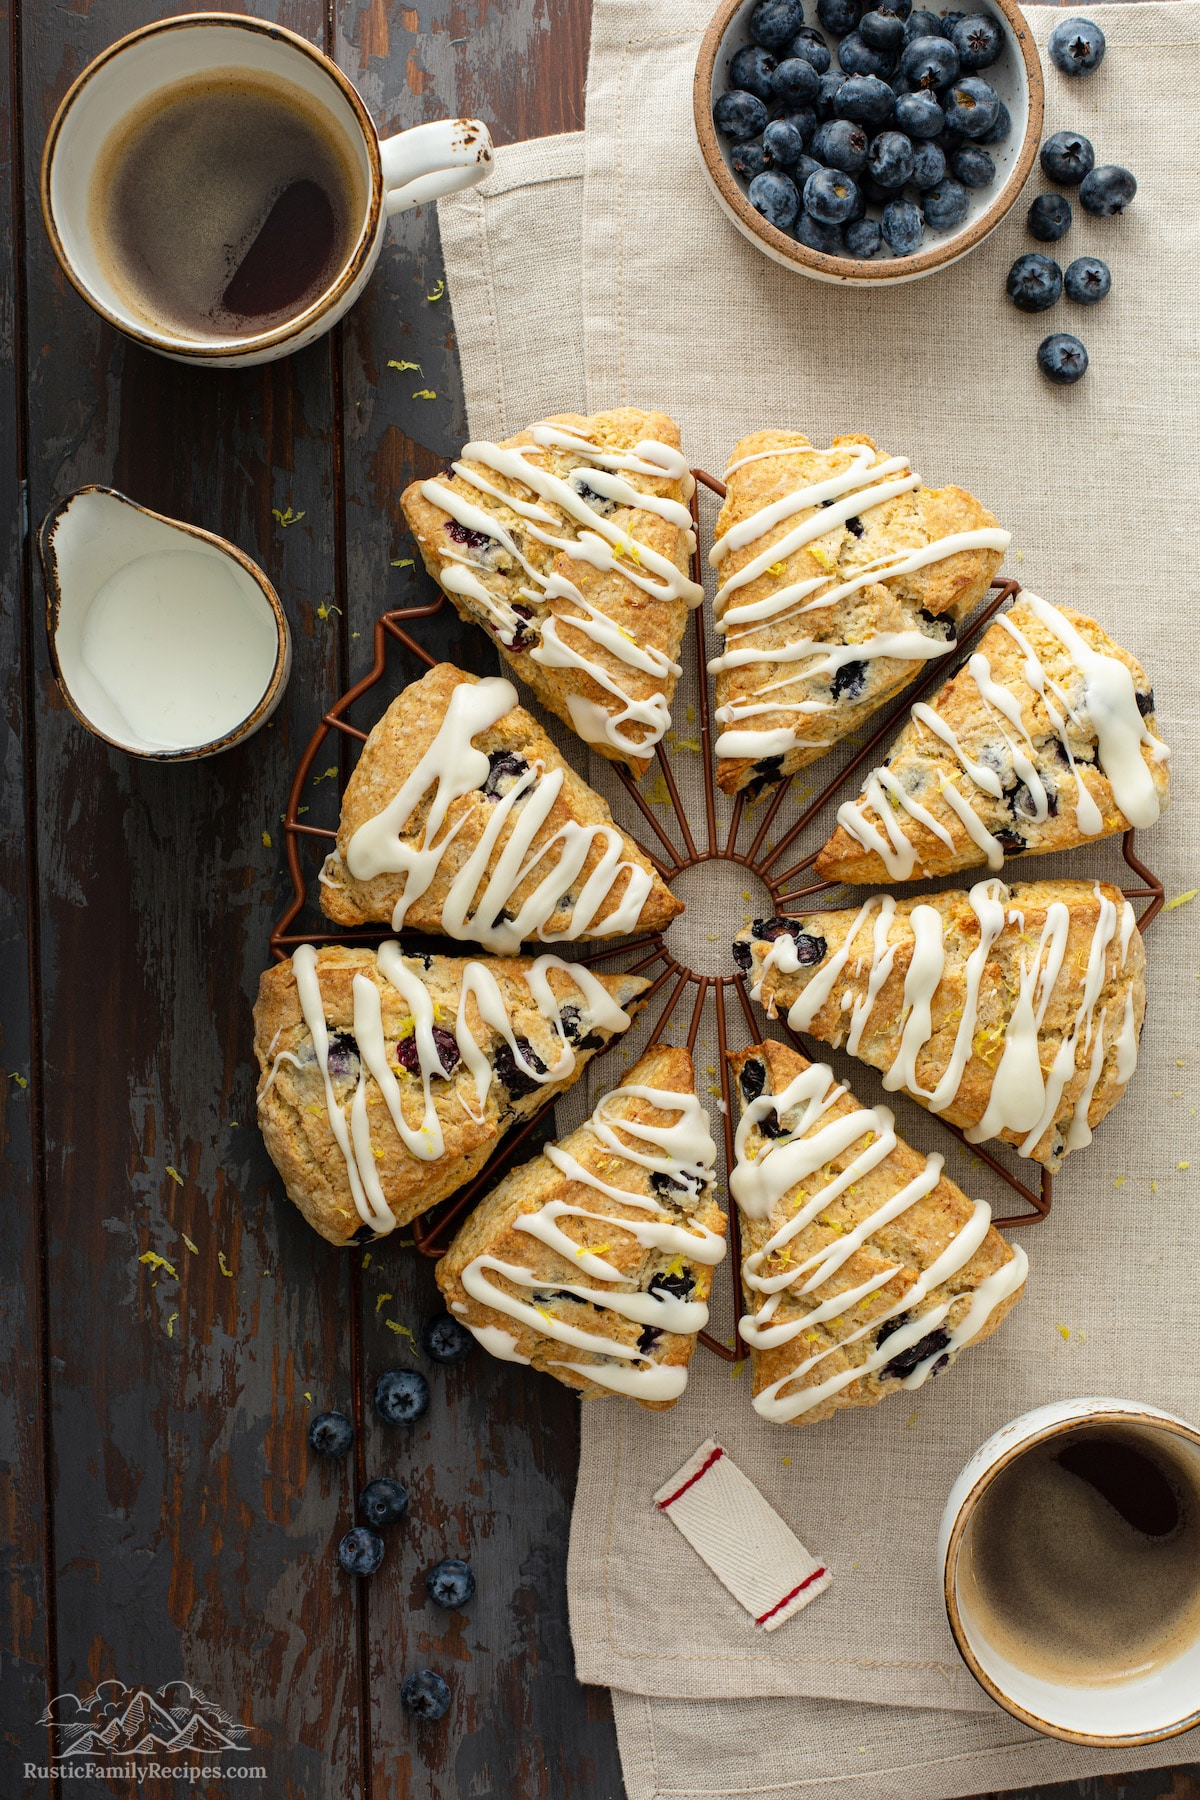 Glazed blueberry scones on a cooling rack next to coffee mugs.